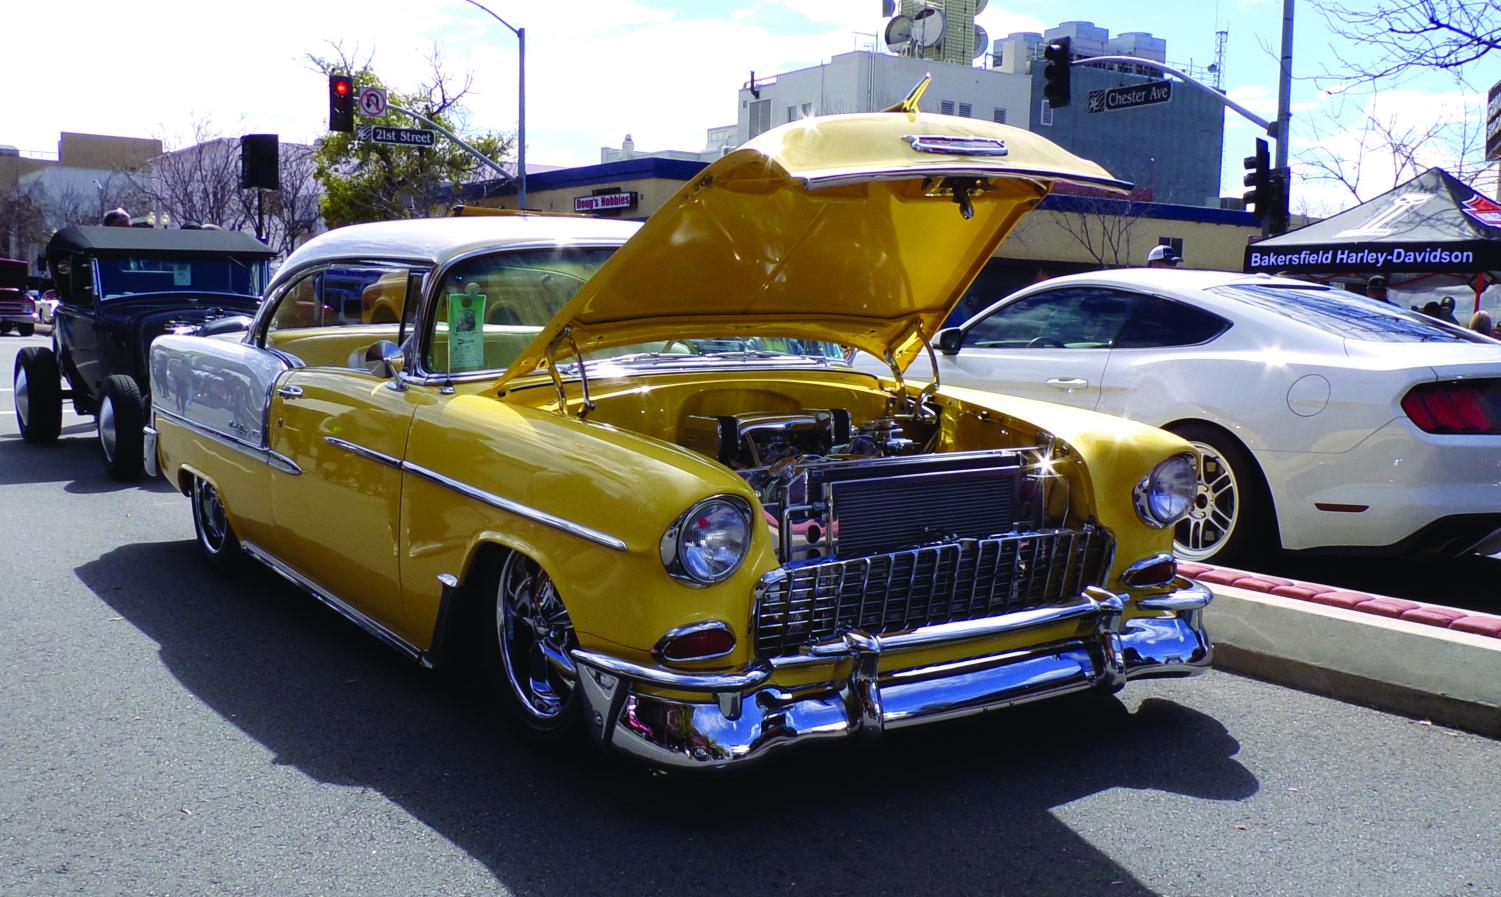 Streets Of Bakersfield Cruising Shine Brings Car Enthusiasts - Bakersfield car show